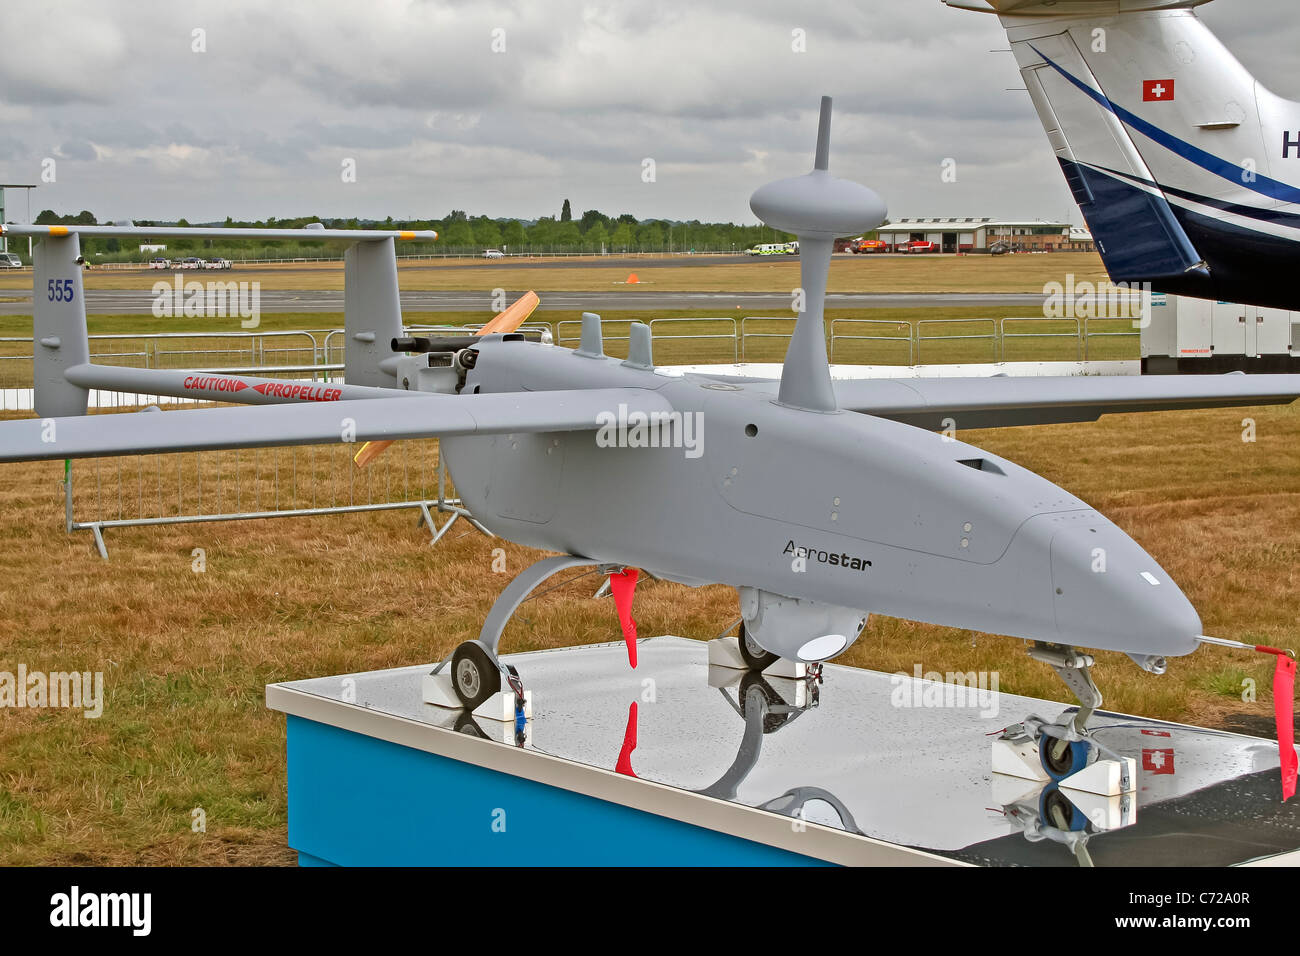 Aerostar Tactical Unmanned Air Vehicle System at the Farnborough International Airshow - Stock Image